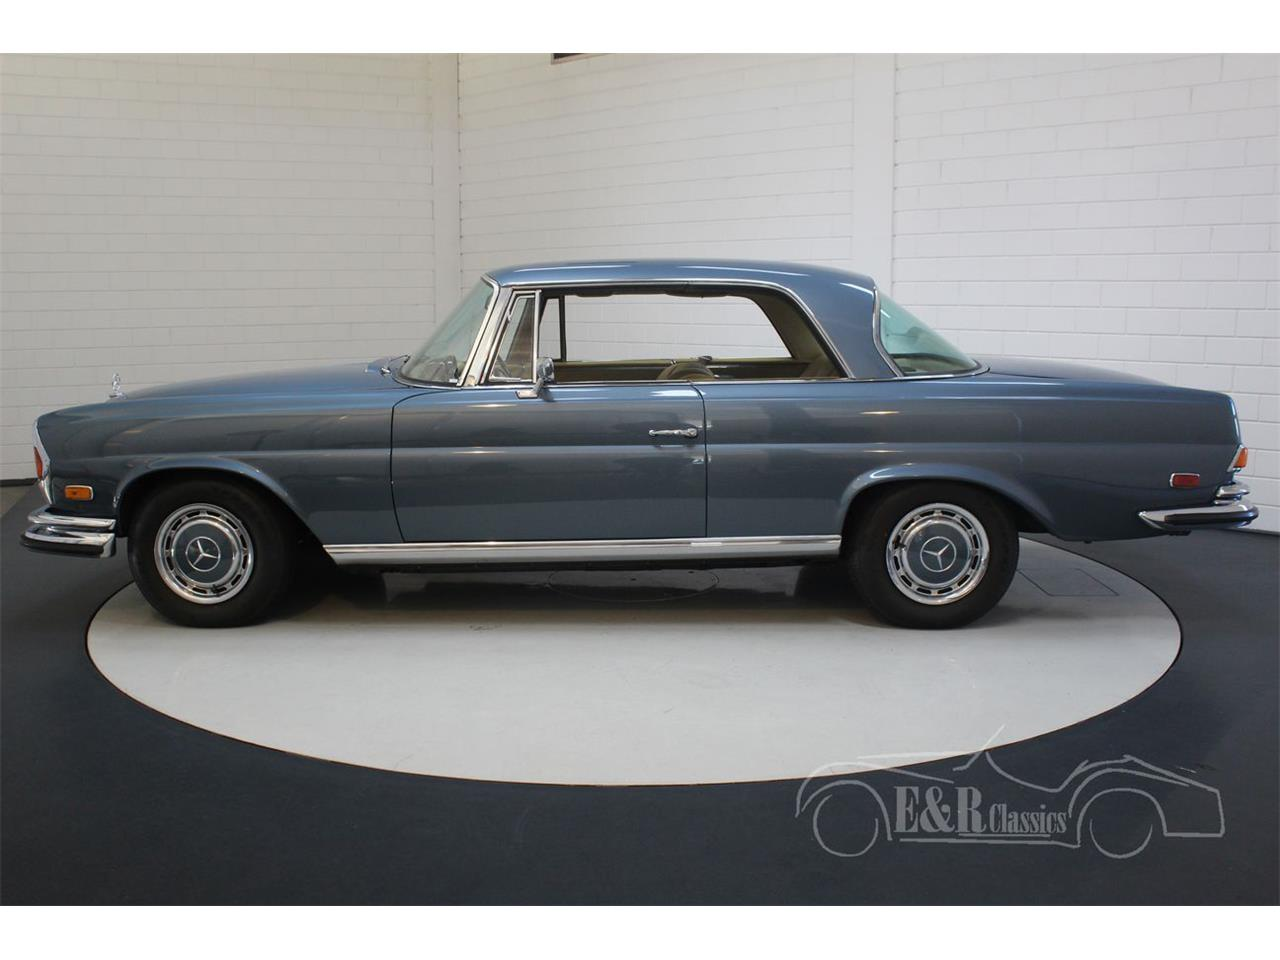 Large Picture of '71 Mercedes-Benz 280SE located in Waalwijk Noord-Brabant - $113,800.00 - QEBY